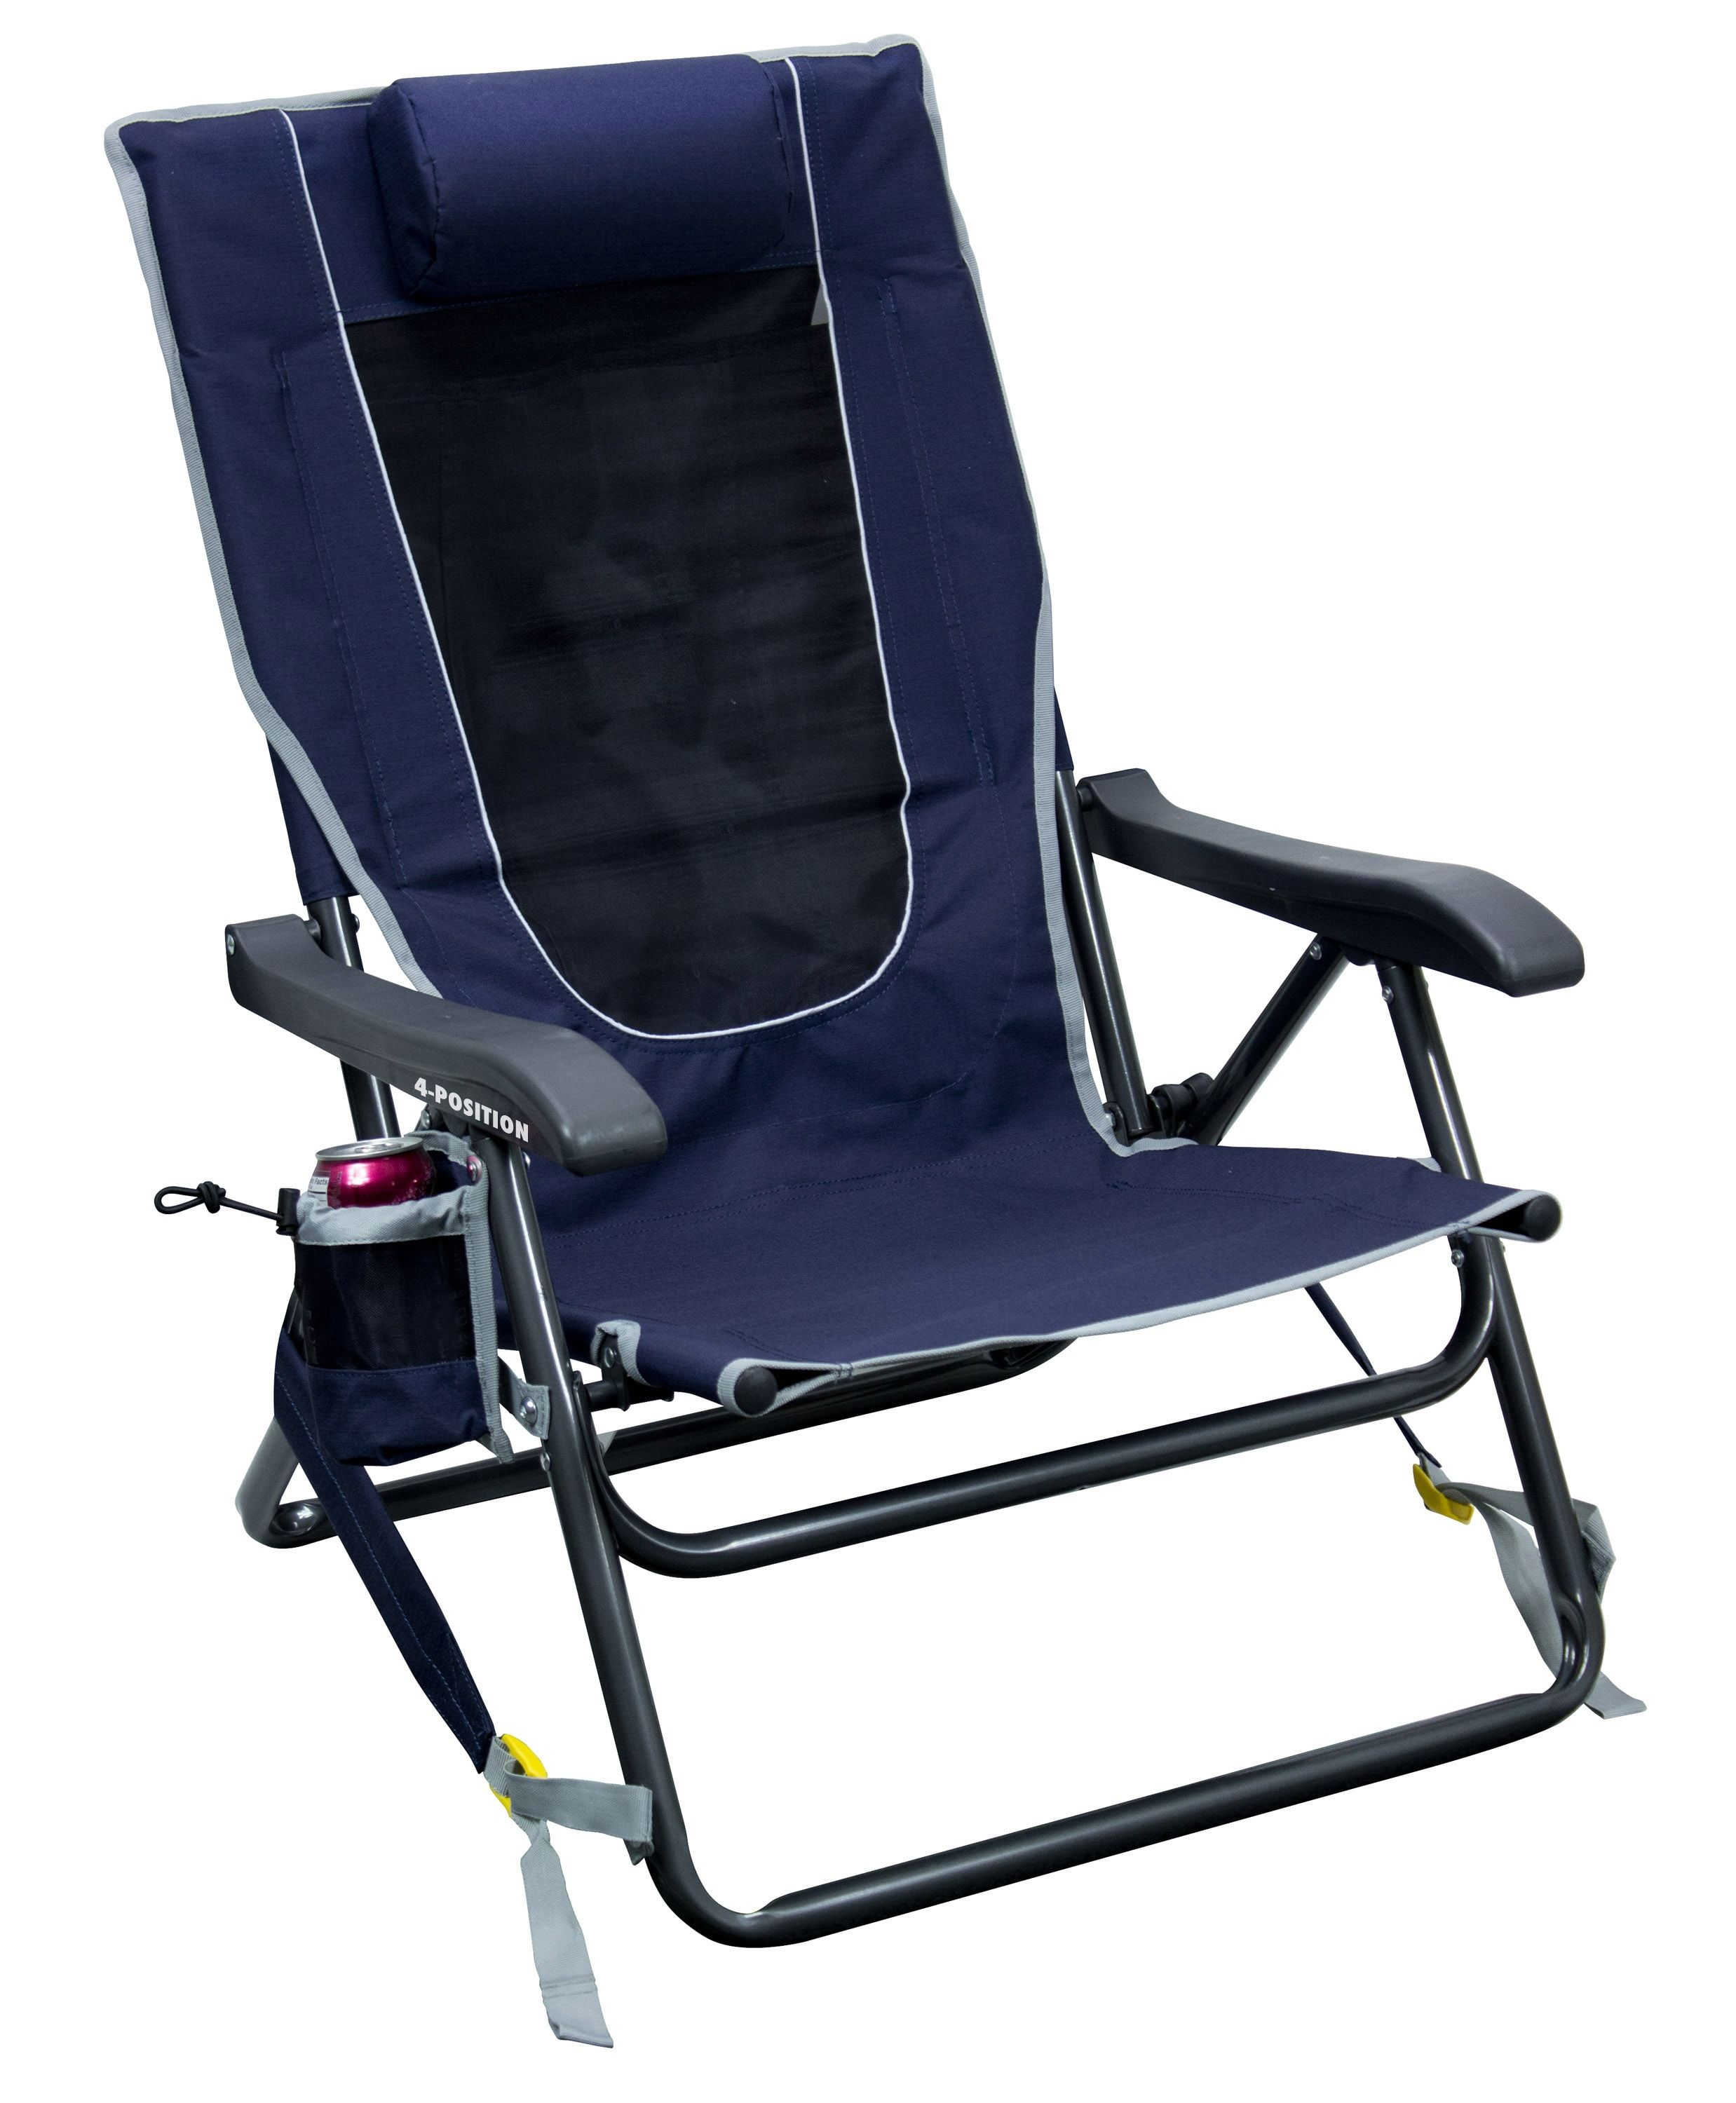 Backpack Event Chair Backpack Chair GCI Outdoor